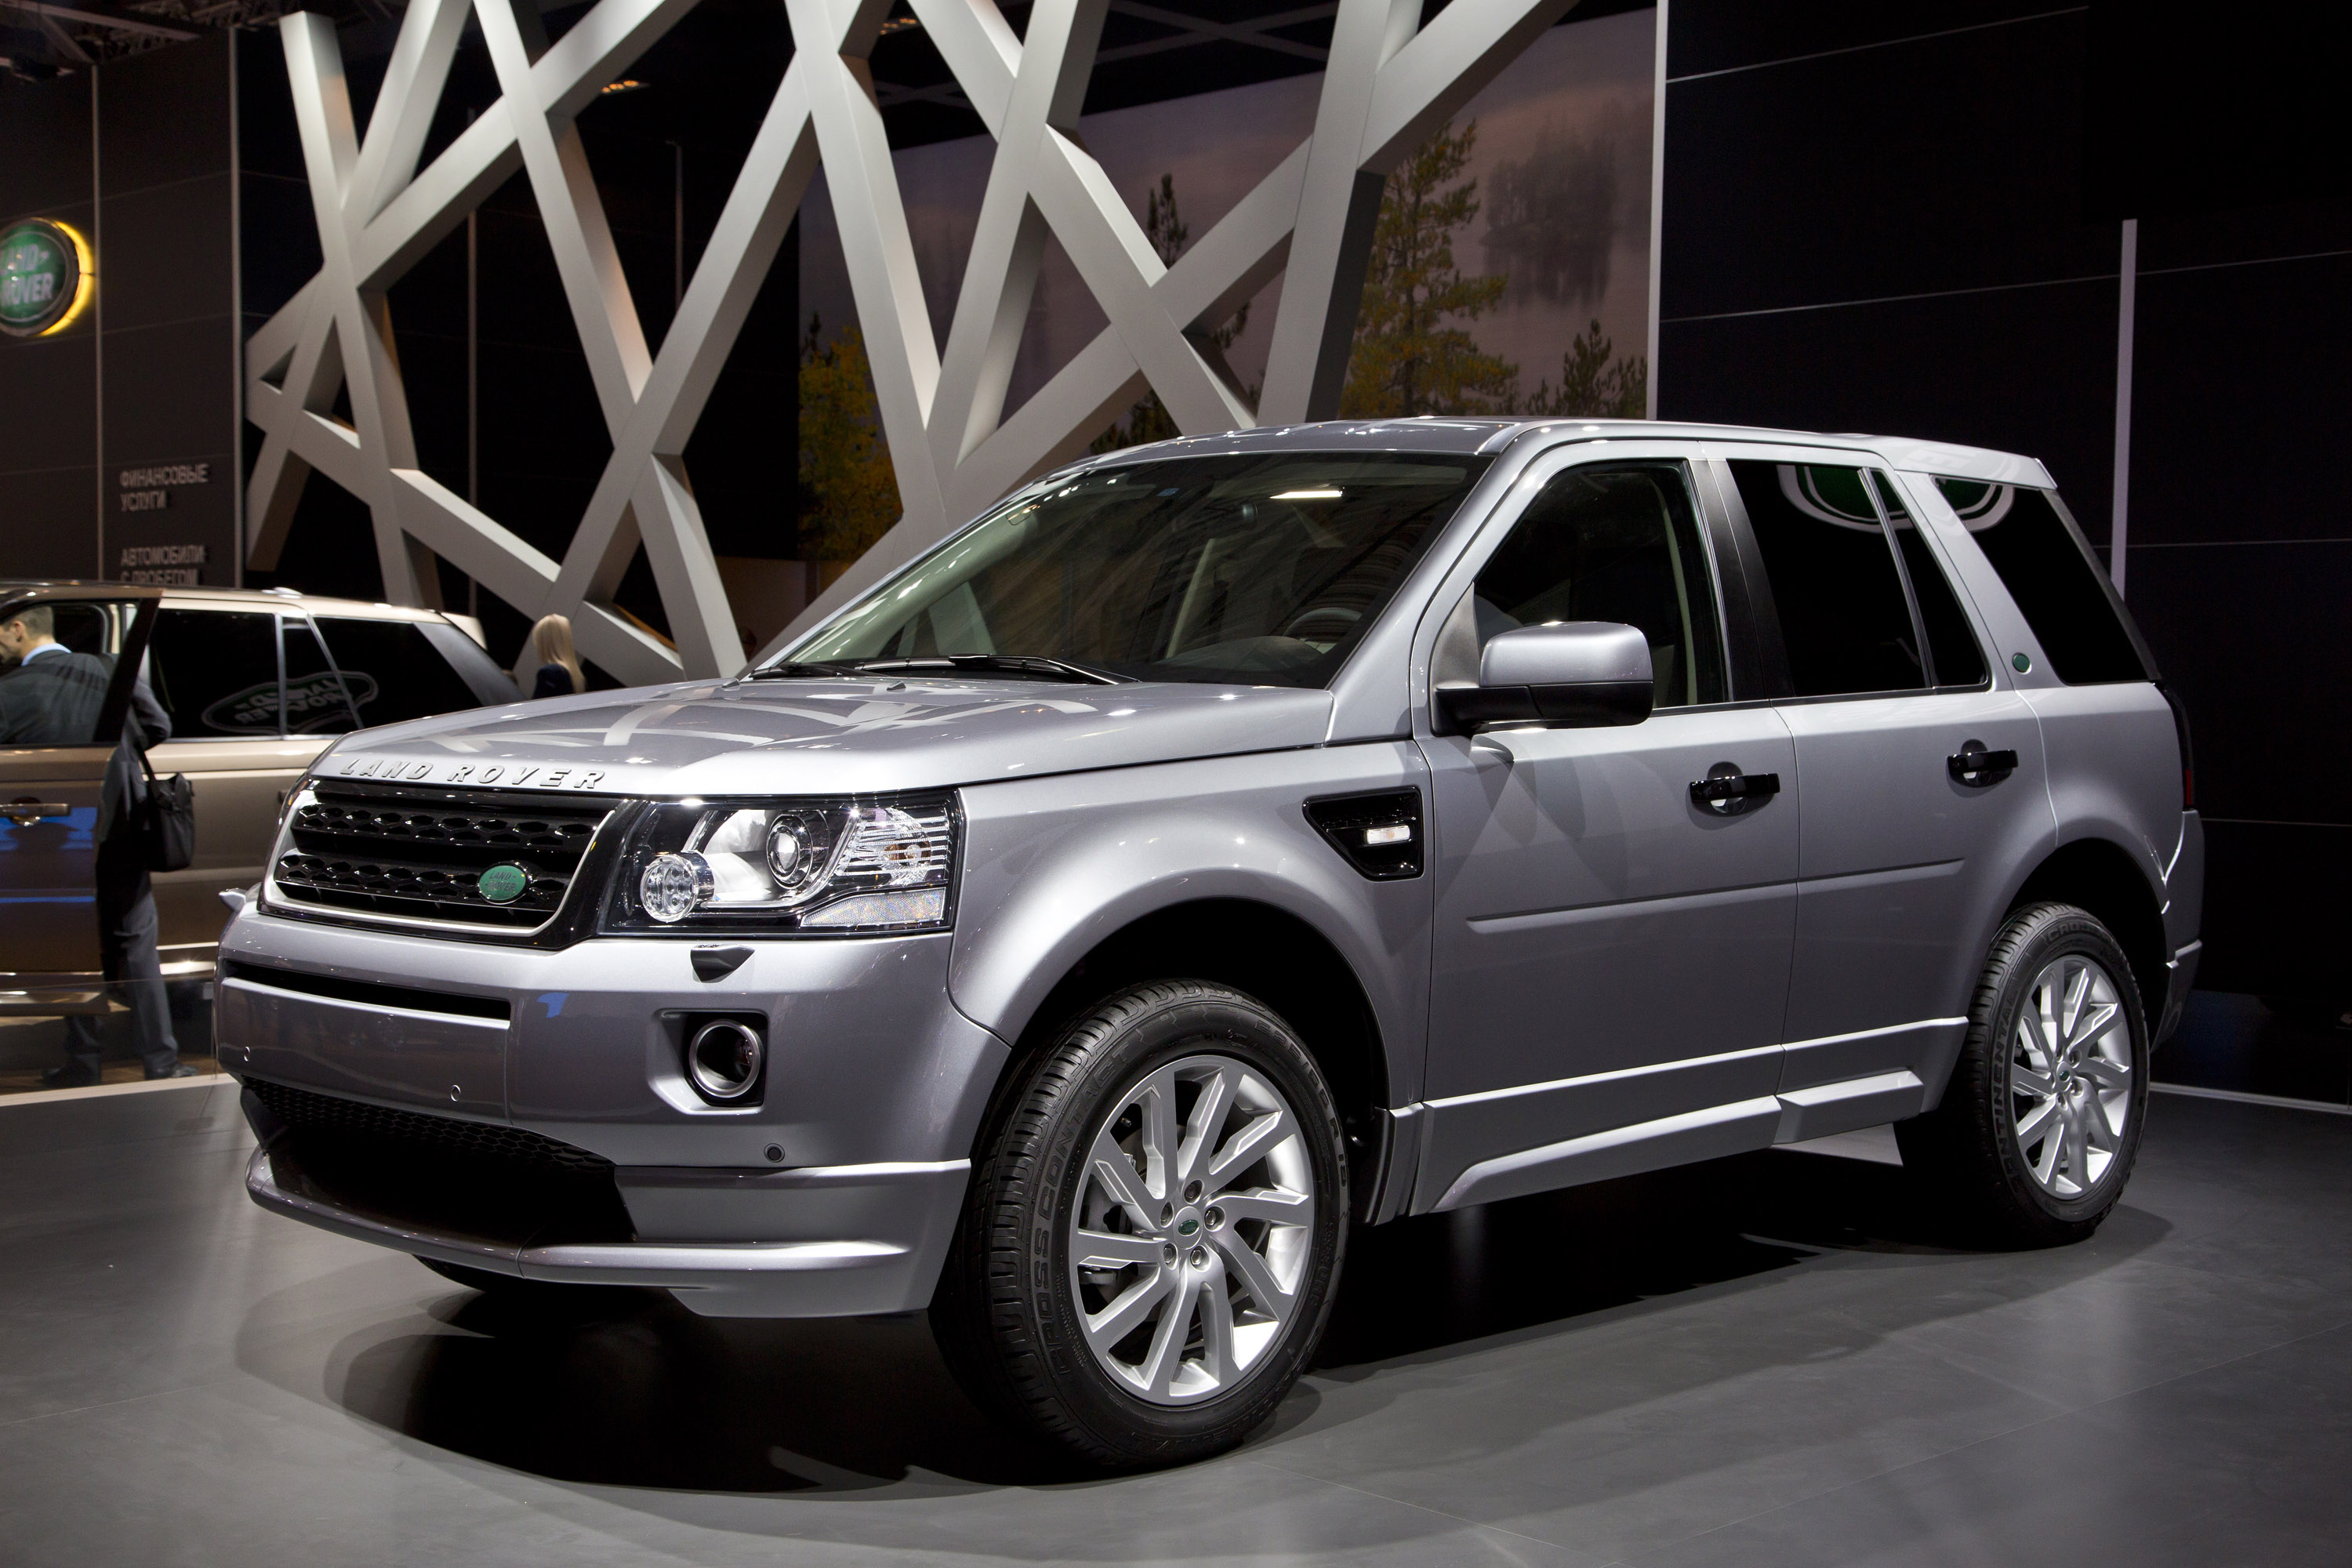 Land Rover Freelander 2 Moscow 2012 - Picture 73898